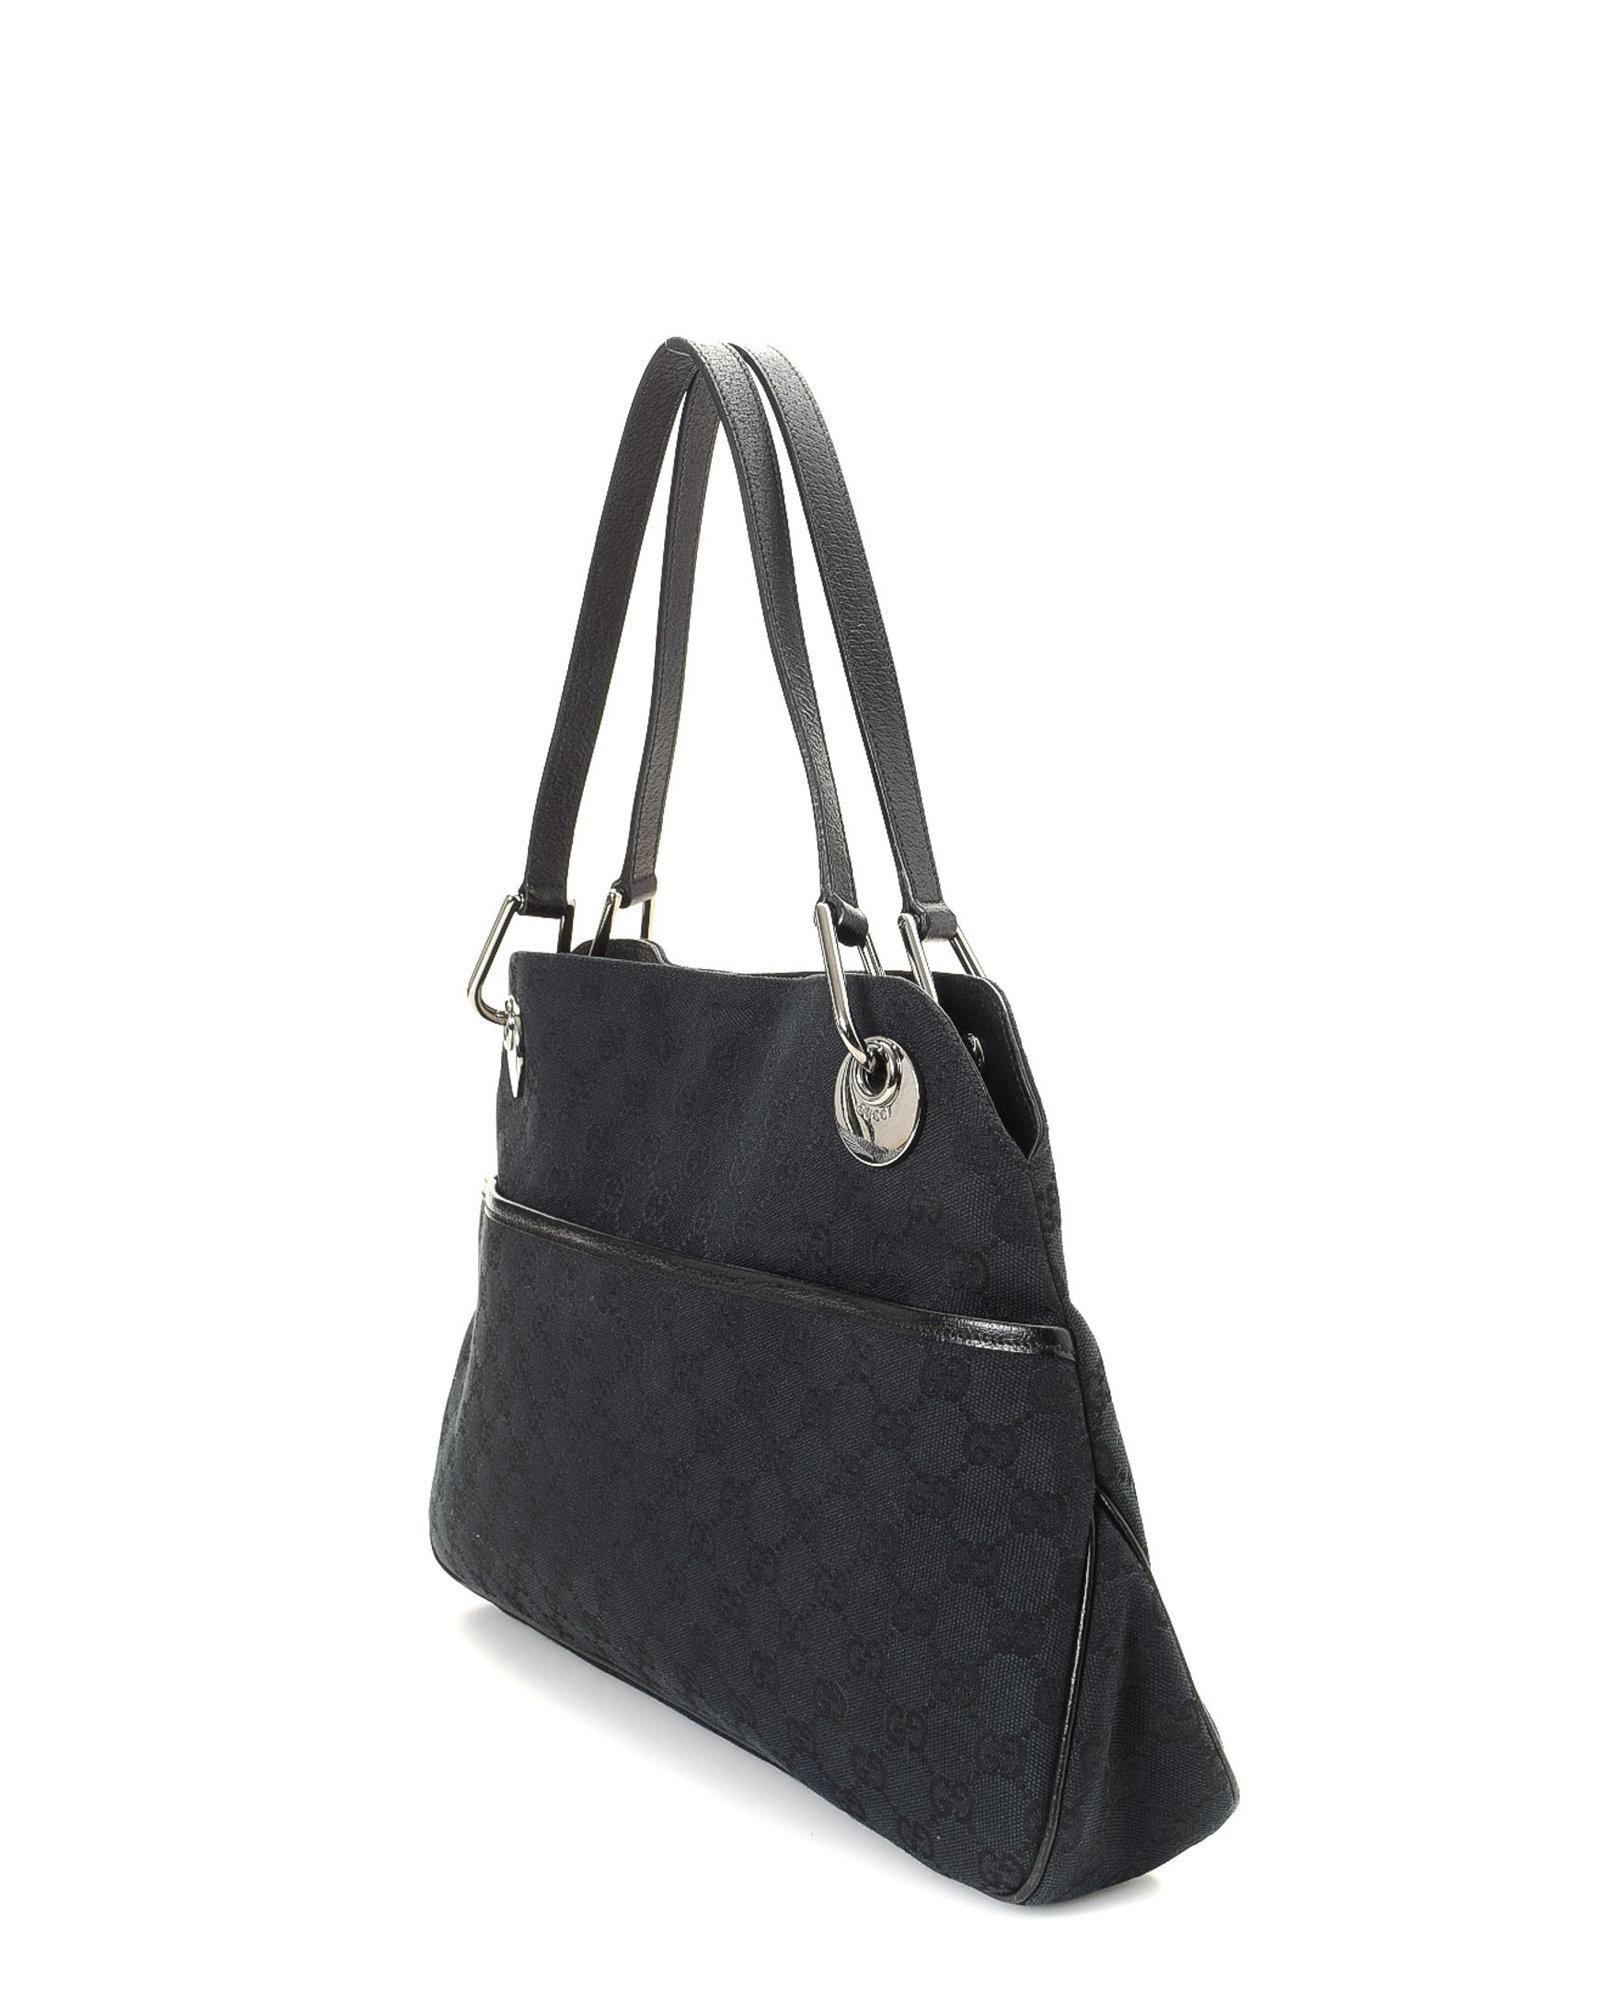 924ef3d539d6 Lyst - Gucci Gg Canvas Shoulder Bag - Vintage in Black